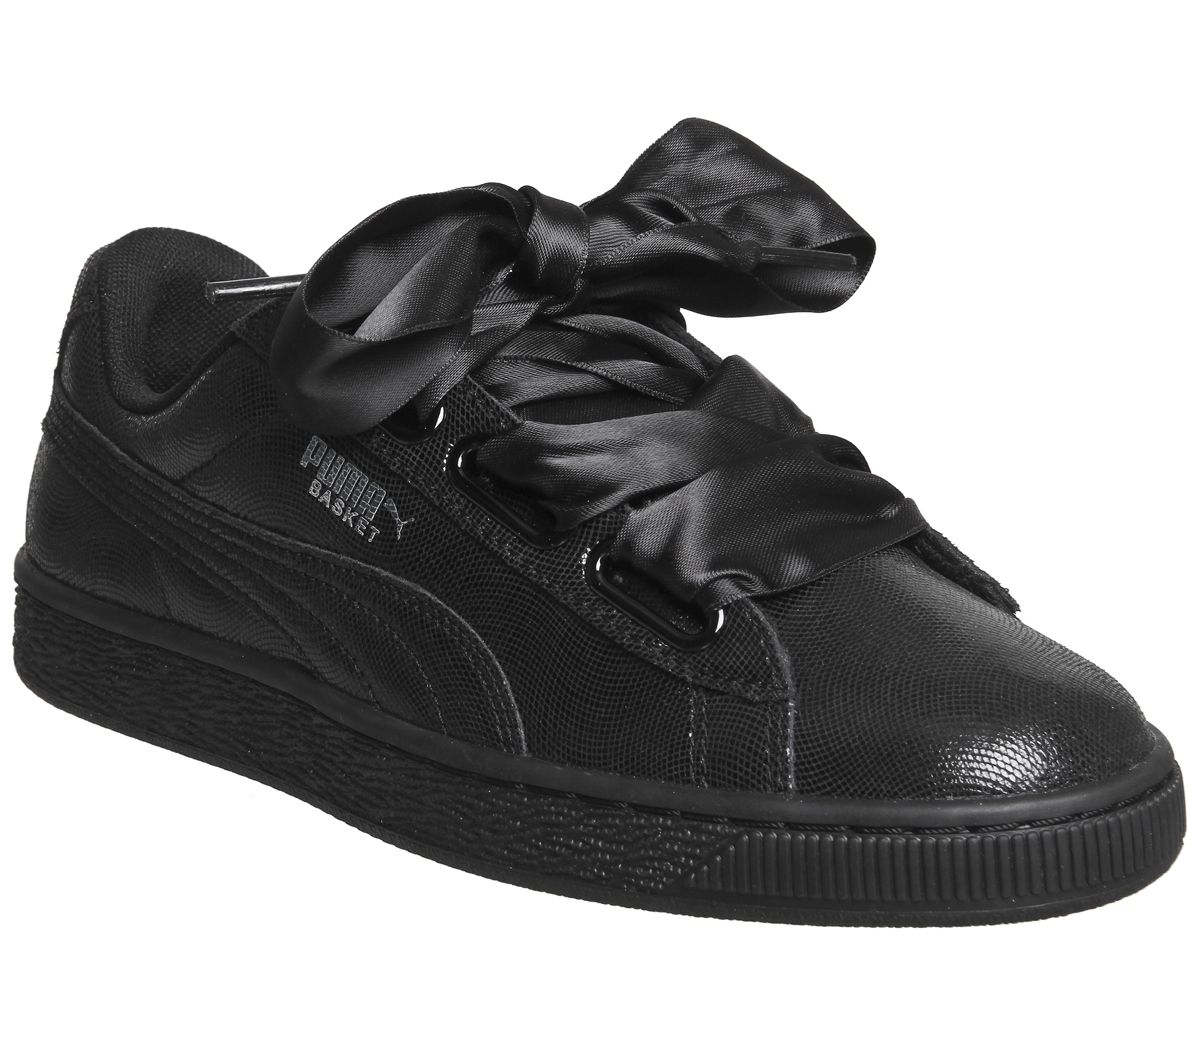 lowest price 3064c 7354d Basket Heart Trainers